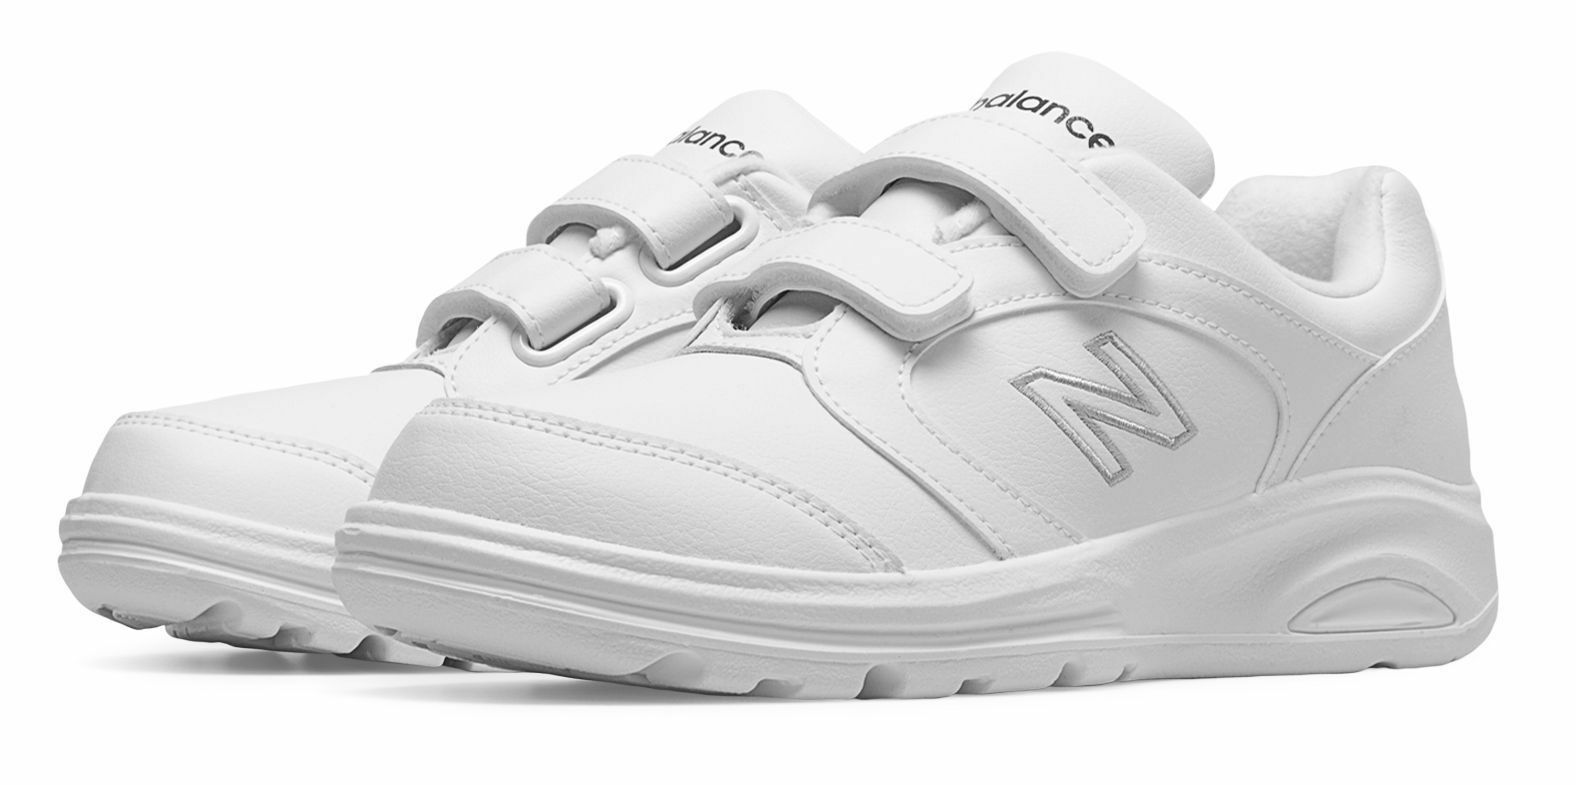 NWB NEW BALANCE WOMEN'S WALKING 674 HOOK & LOOP SHOES WHITE MSRP   99.99